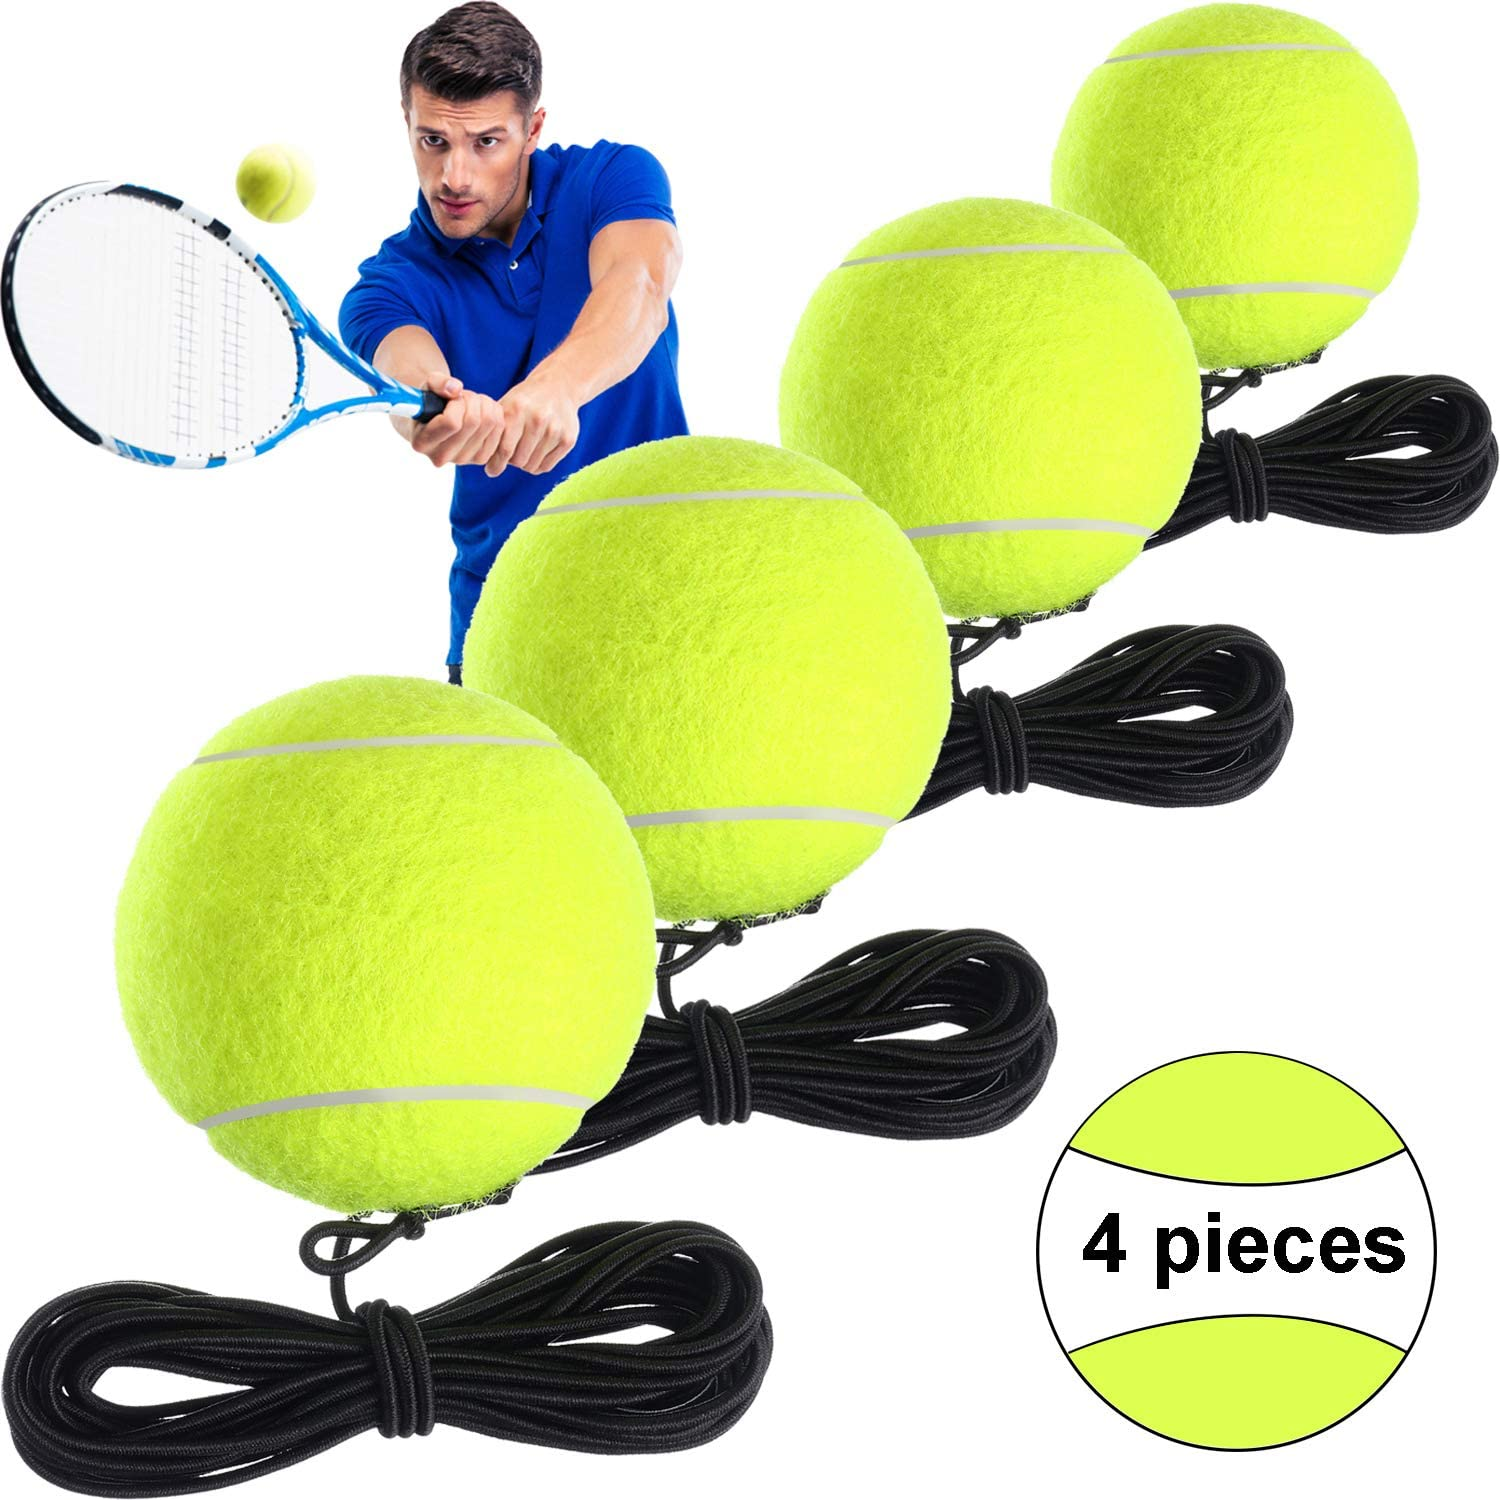 Gejoy 4 Packs Tennis Training Ball with String Tennis Trainer Balls Self Practice Trainer Tool Tennis Ball Training Equipment for Tennis Trainer Practice Exercise